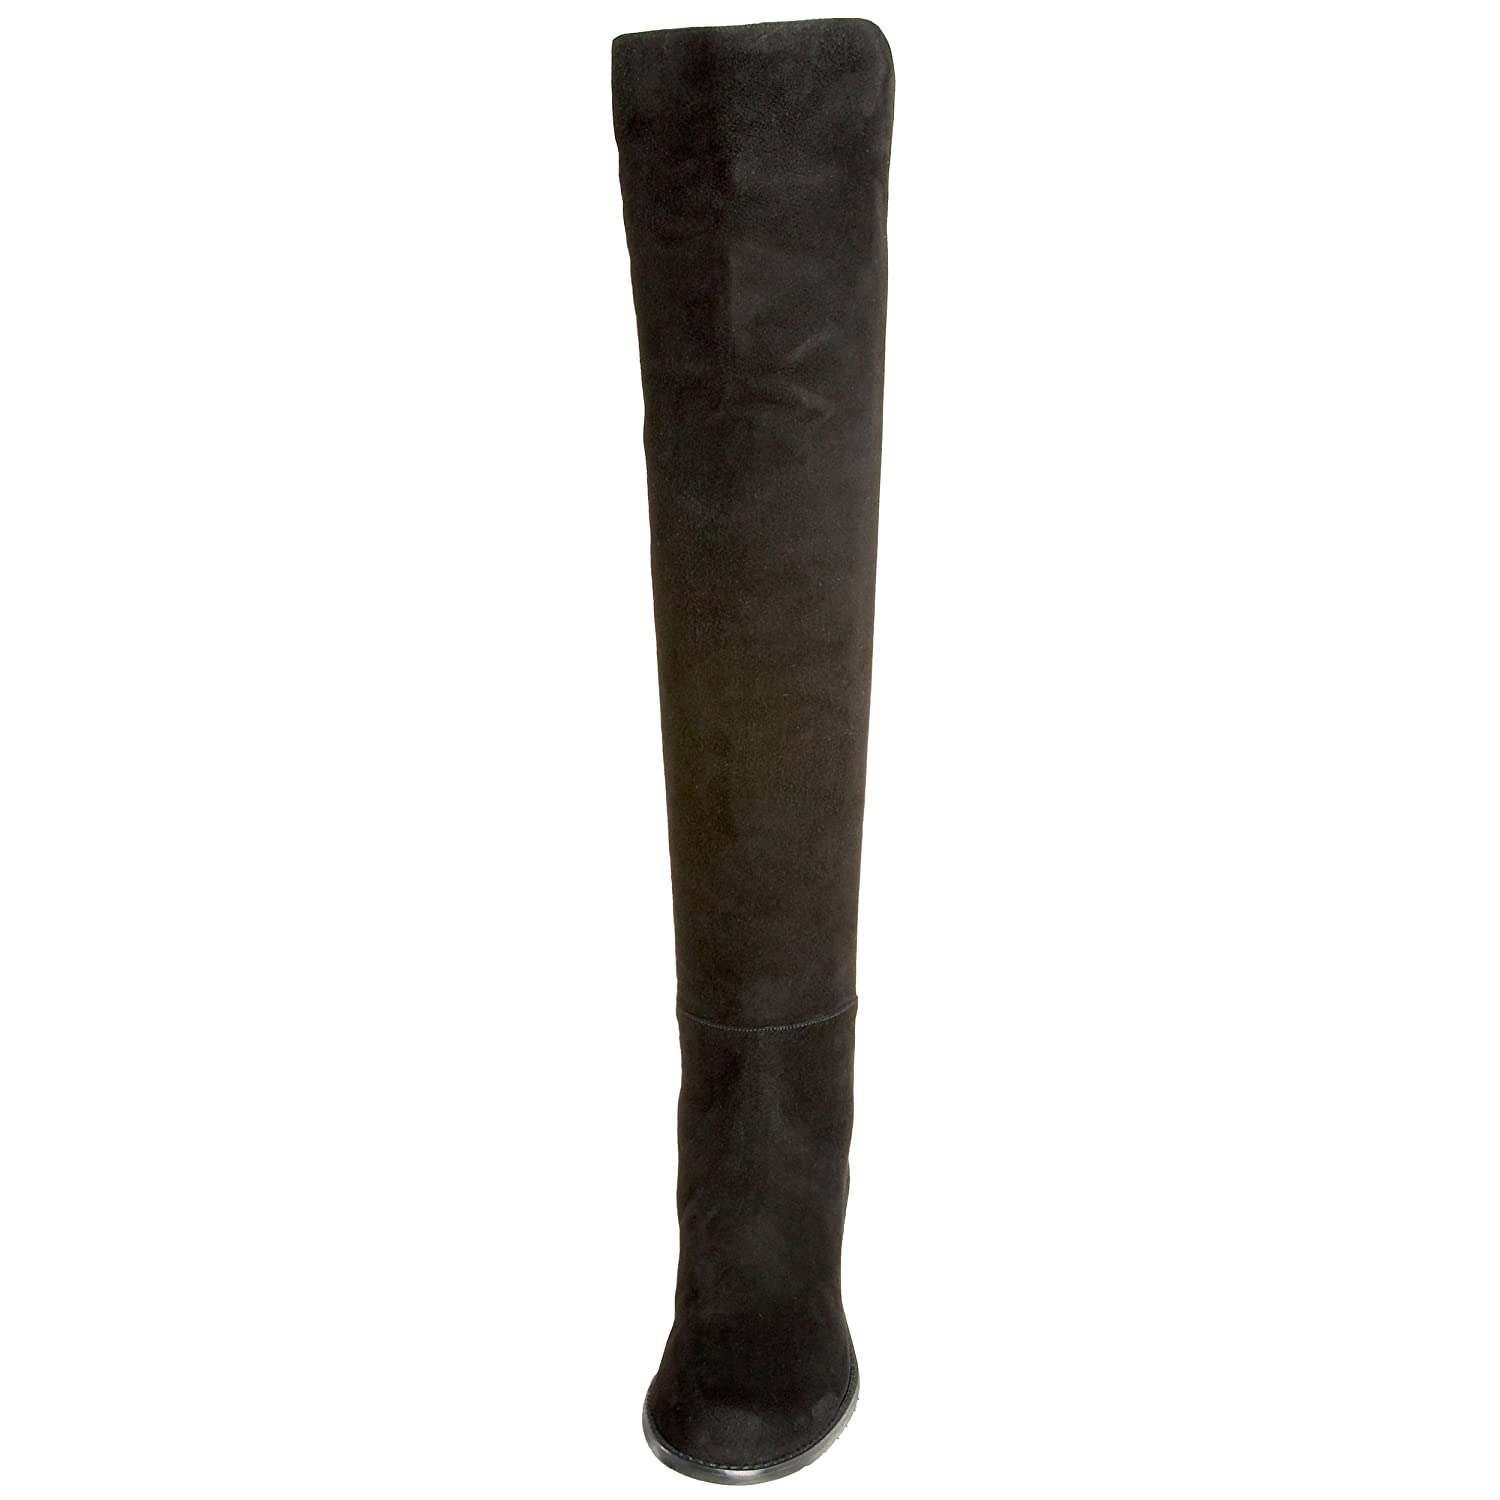 Stuart Weitzman Women's 5050 Over-the-Knee Boot B001O5CREW 5.5 W US|Black Suede